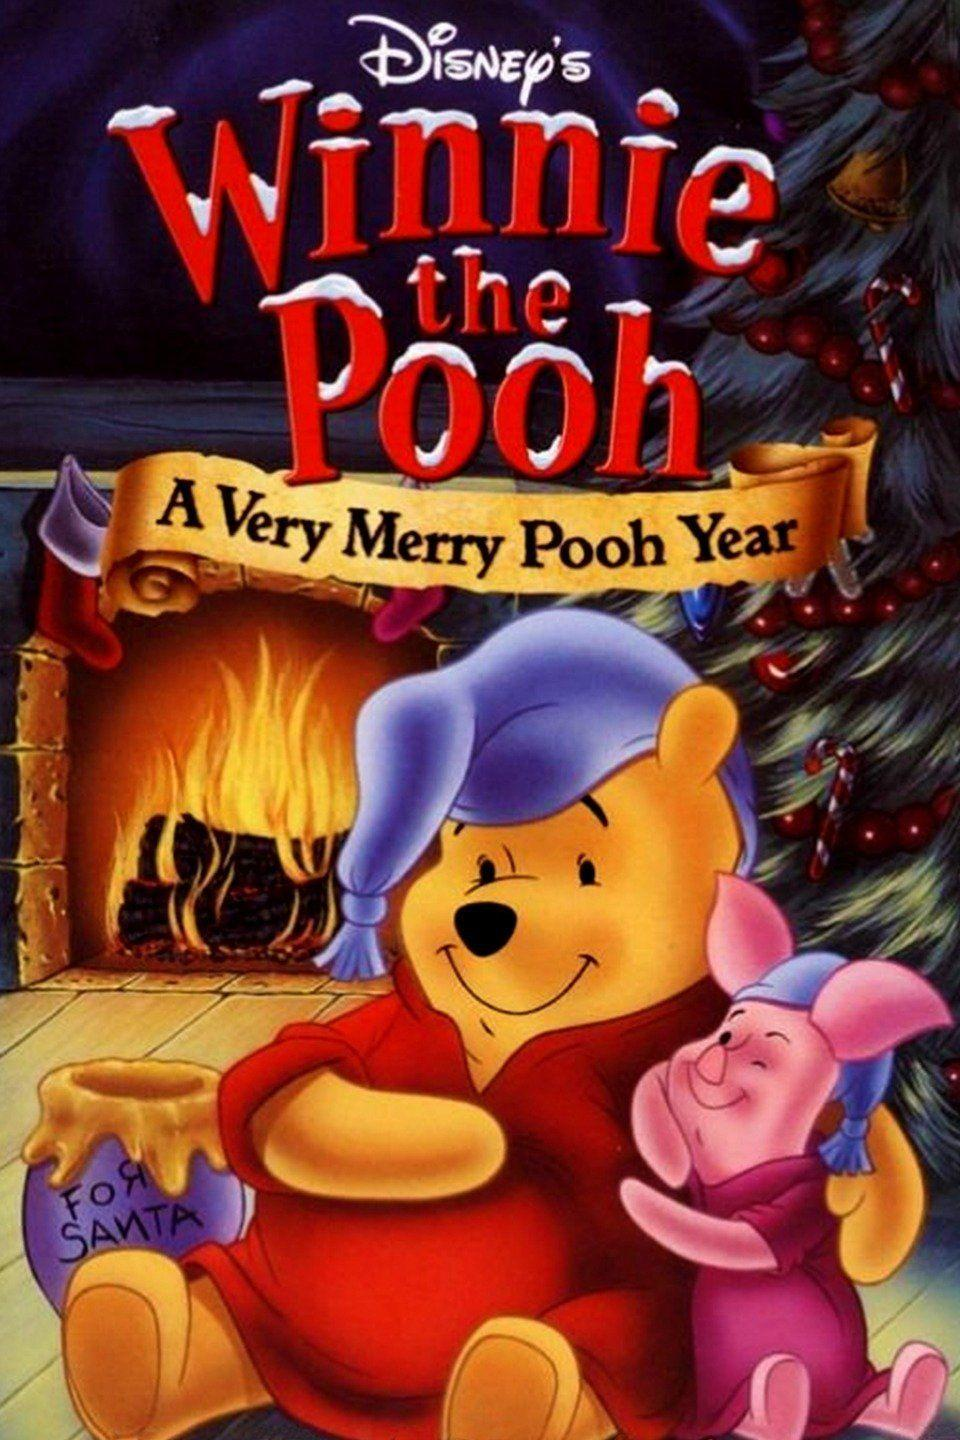 "<p><a class=""link rapid-noclick-resp"" href=""https://go.redirectingat.com?id=74968X1596630&url=https%3A%2F%2Fwww.disneyplus.com%2Fmovies%2Fwinnie-the-pooh-a-very-merry-pooh-year%2F8AgNKkCrq8Oc&sref=https%3A%2F%2Fwww.womansday.com%2Flife%2Fentertainment%2Fg34694772%2Fdisney-christmas-movies%2F"" rel=""nofollow noopener"" target=""_blank"" data-ylk=""slk:STREAM NOW"">STREAM NOW</a></p><p><em>A Very Merry Pooh Year </em>is replete with all the warmth and charm we've come to expect from this series. Whether or not your kids have read the books, watching Pooh celebrate Christmas and New Years with his friends is still a delight.</p>"